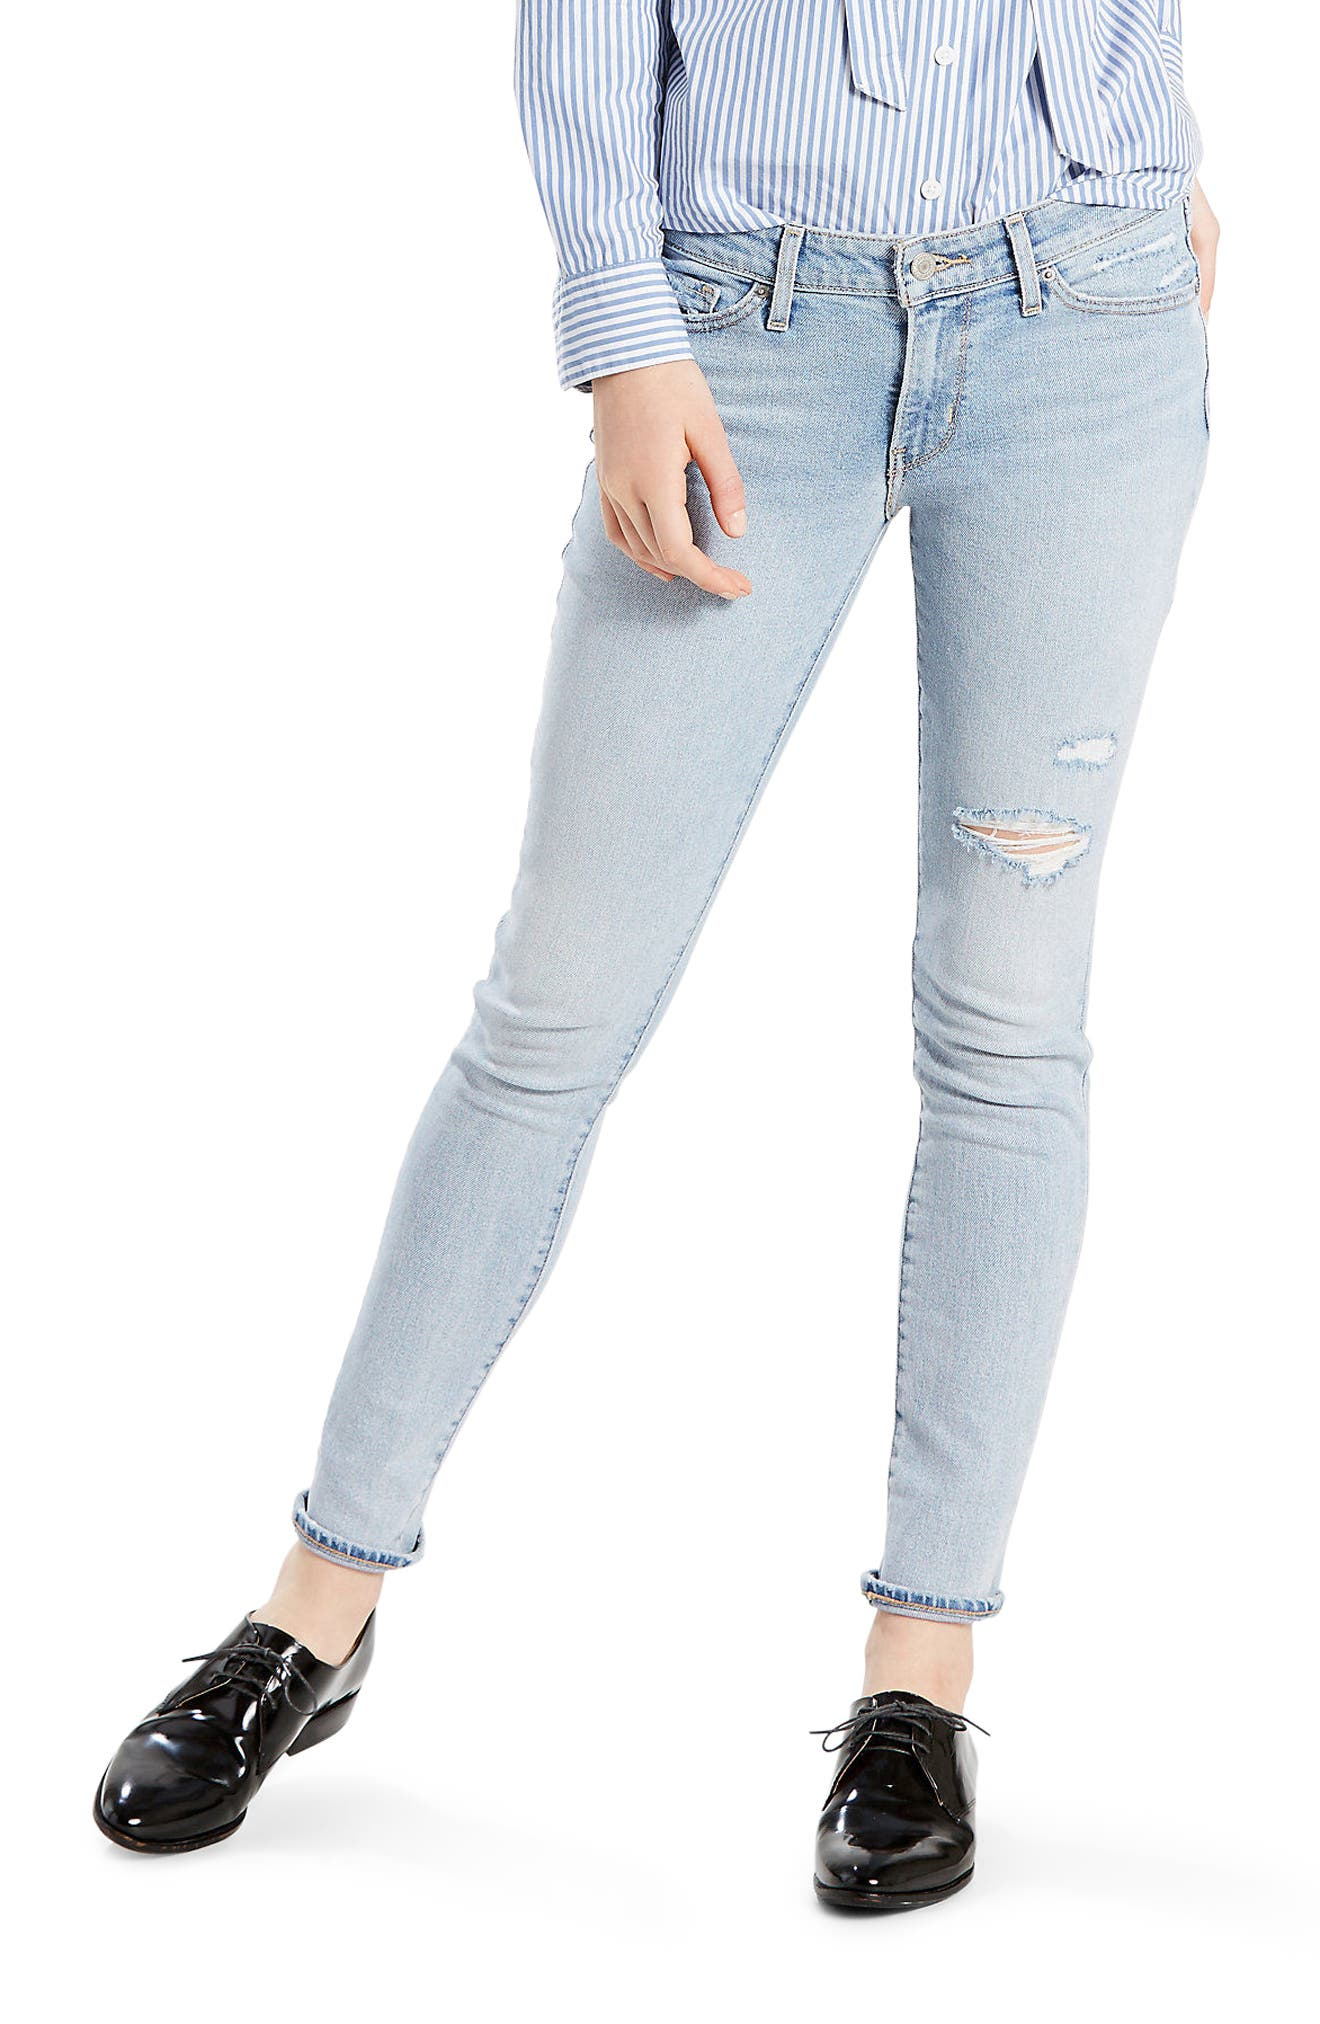 711 Skinny Jeans,                         Main,                         color, 420